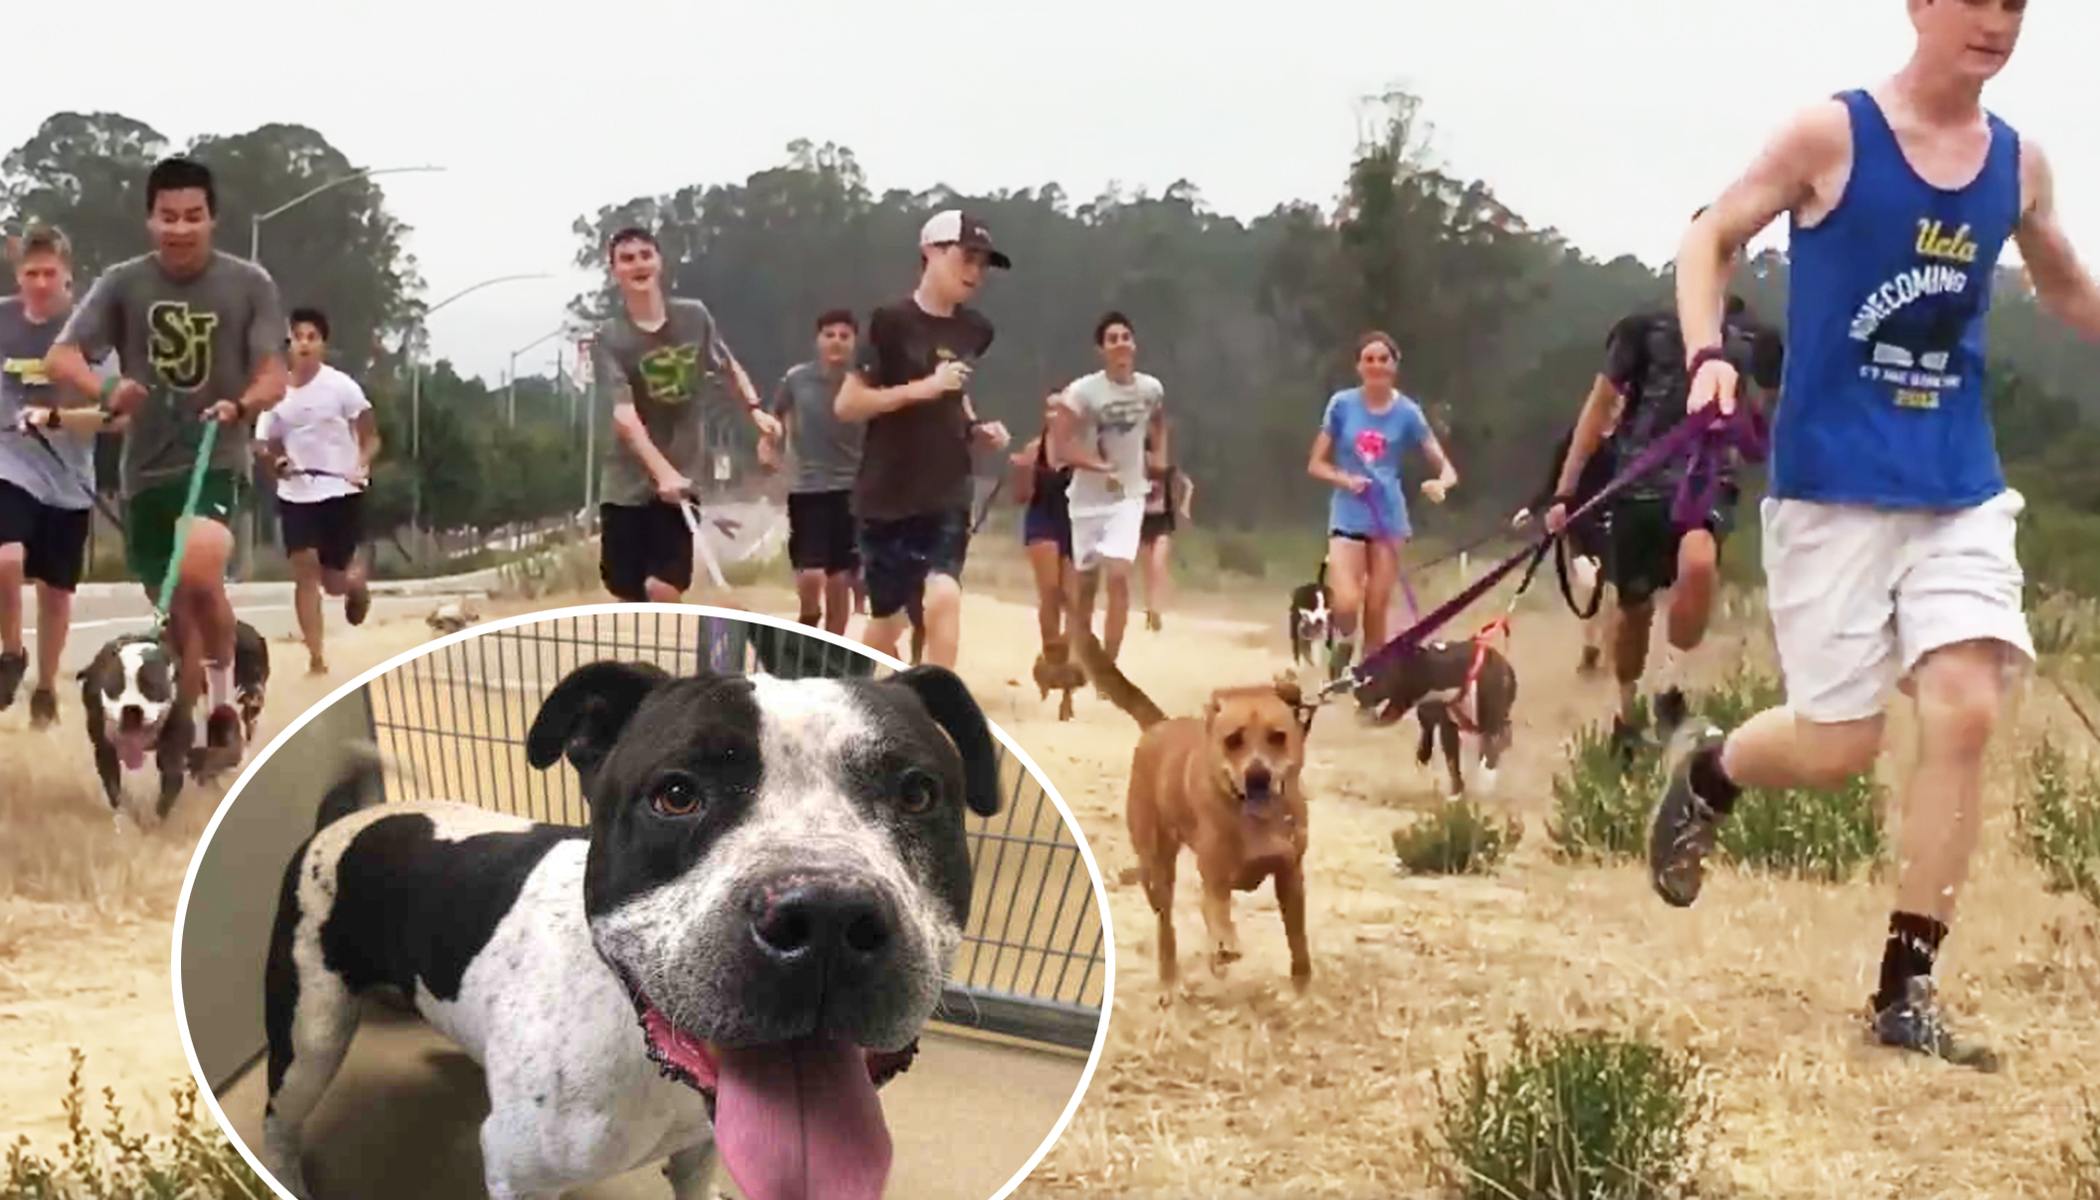 High School Cross-Country Team Takes Shelter Dogs for Runs to Get Exercise During Training